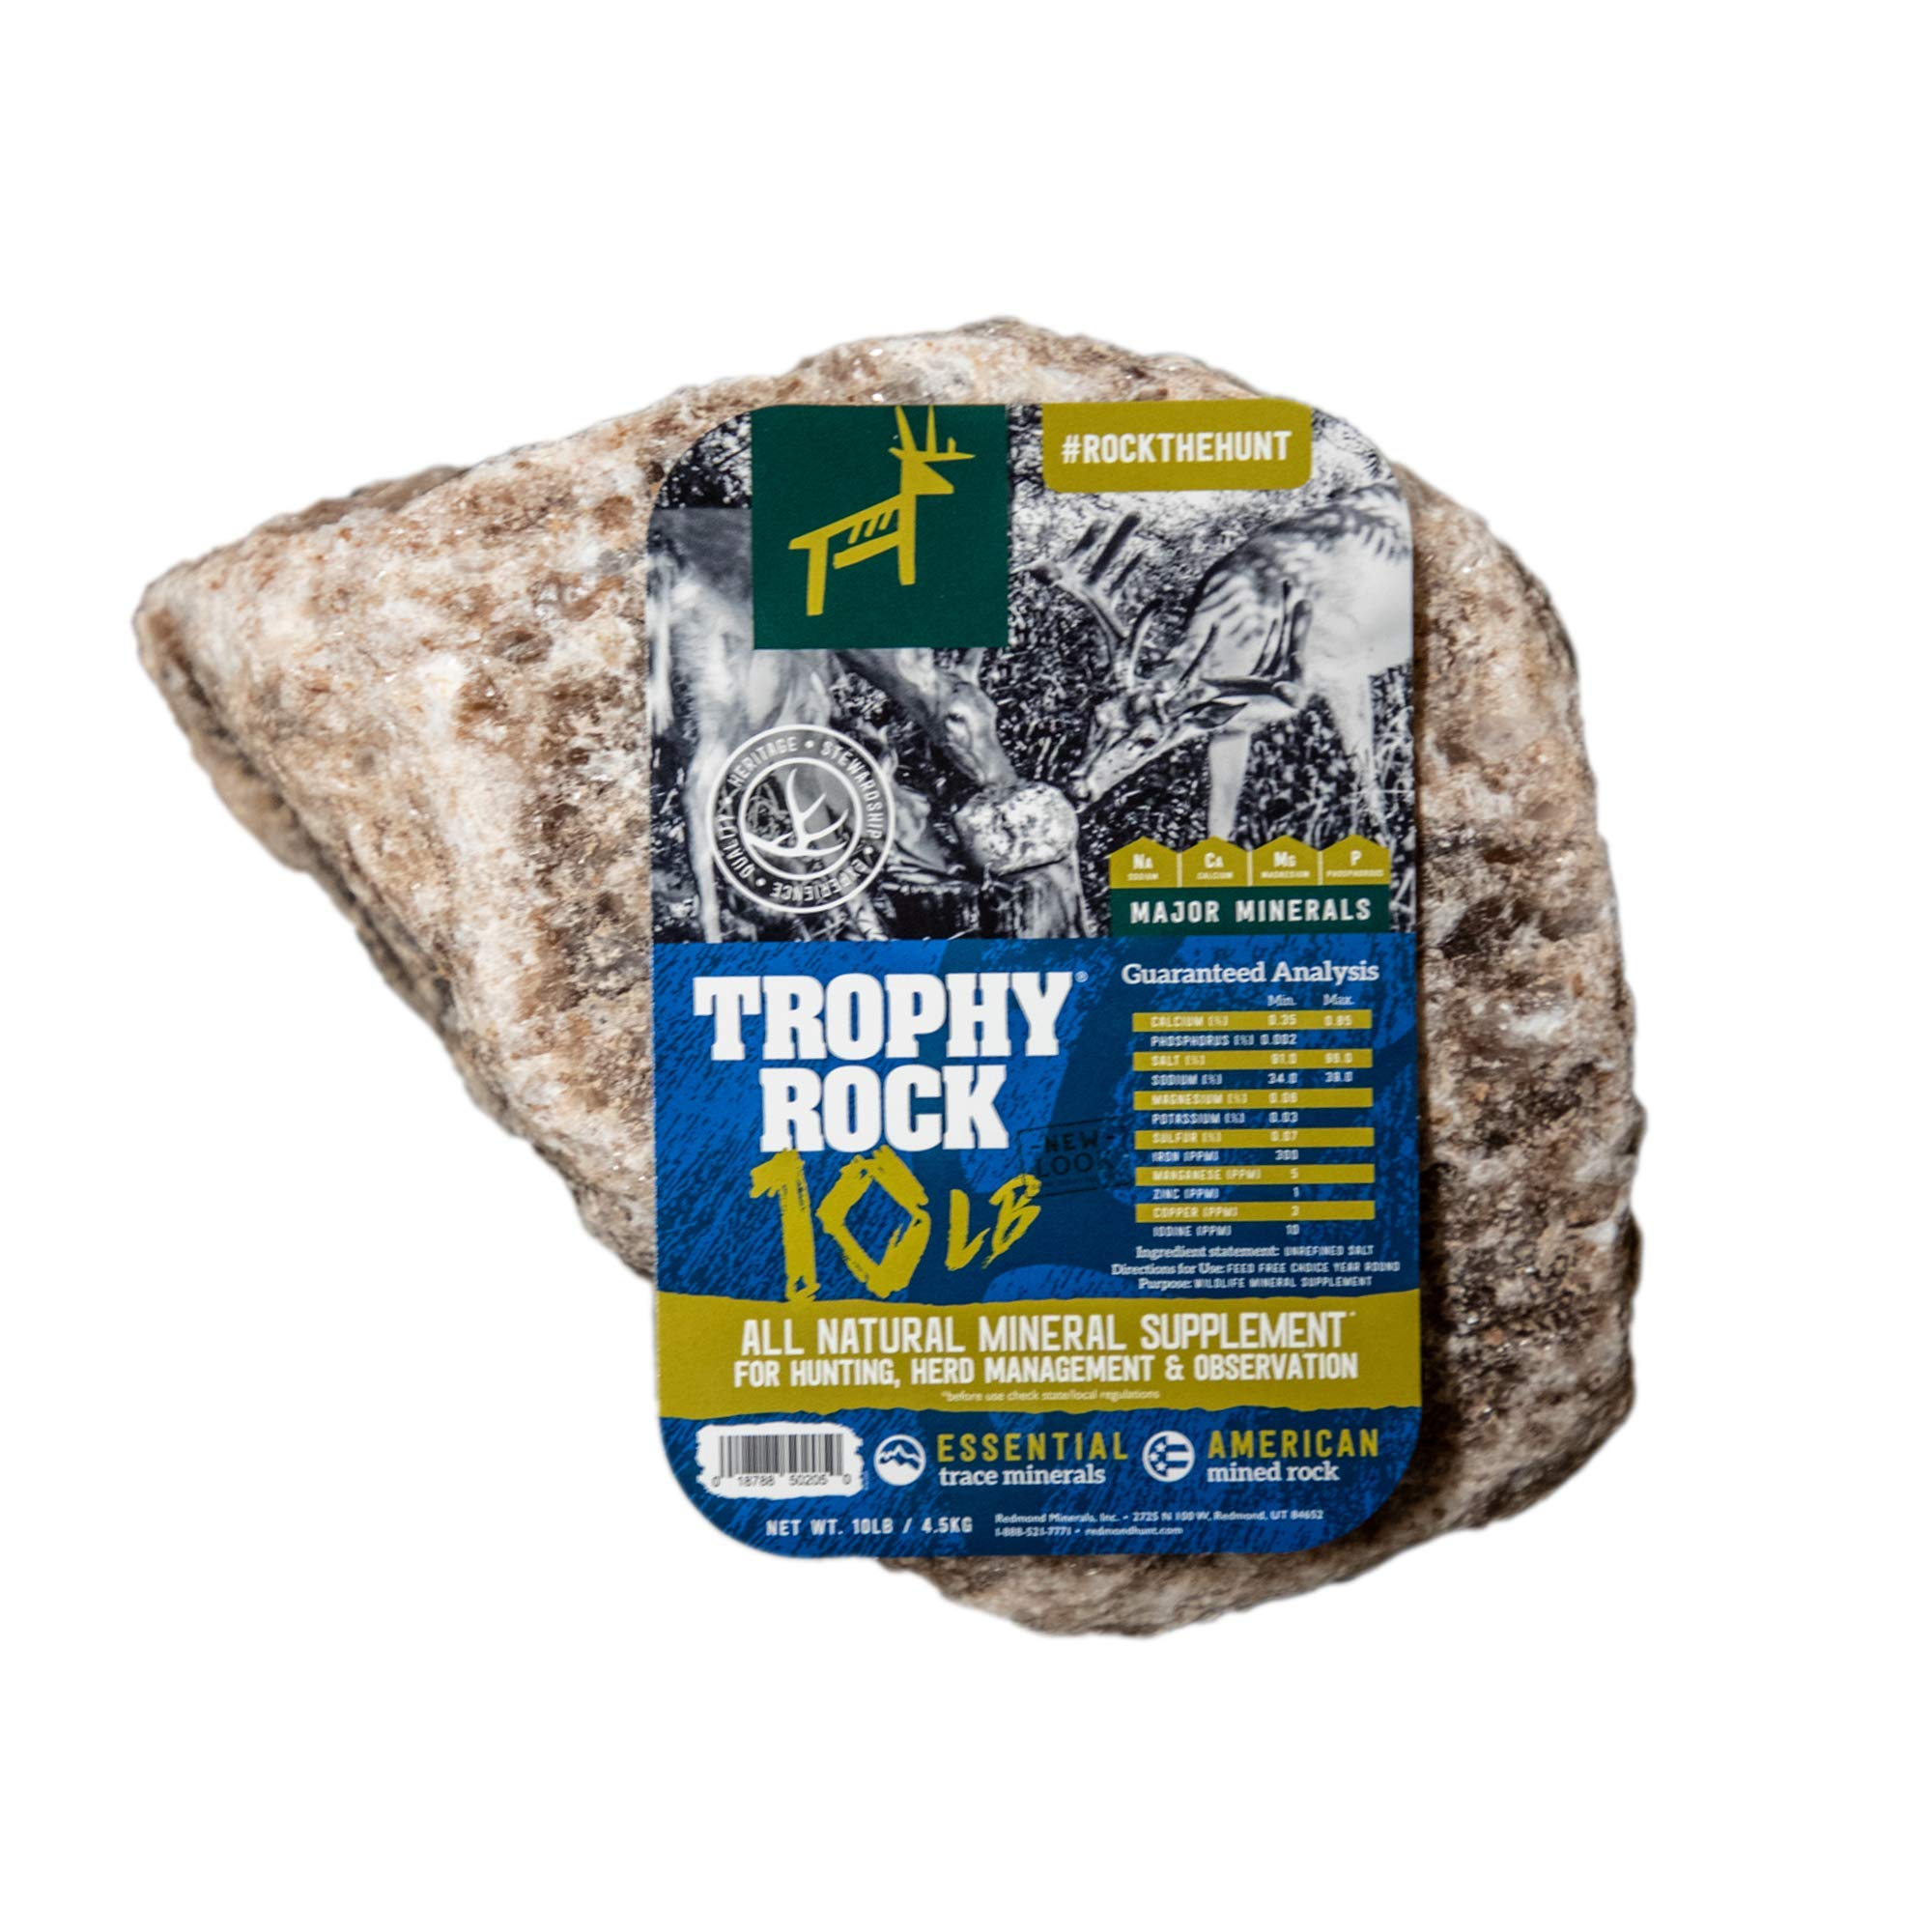 TROPHY ROCK Redmond All-Natural Mineral Rock/Salt Lick, Attract Deer and Big Game (10lb) by TROPHY ROCK